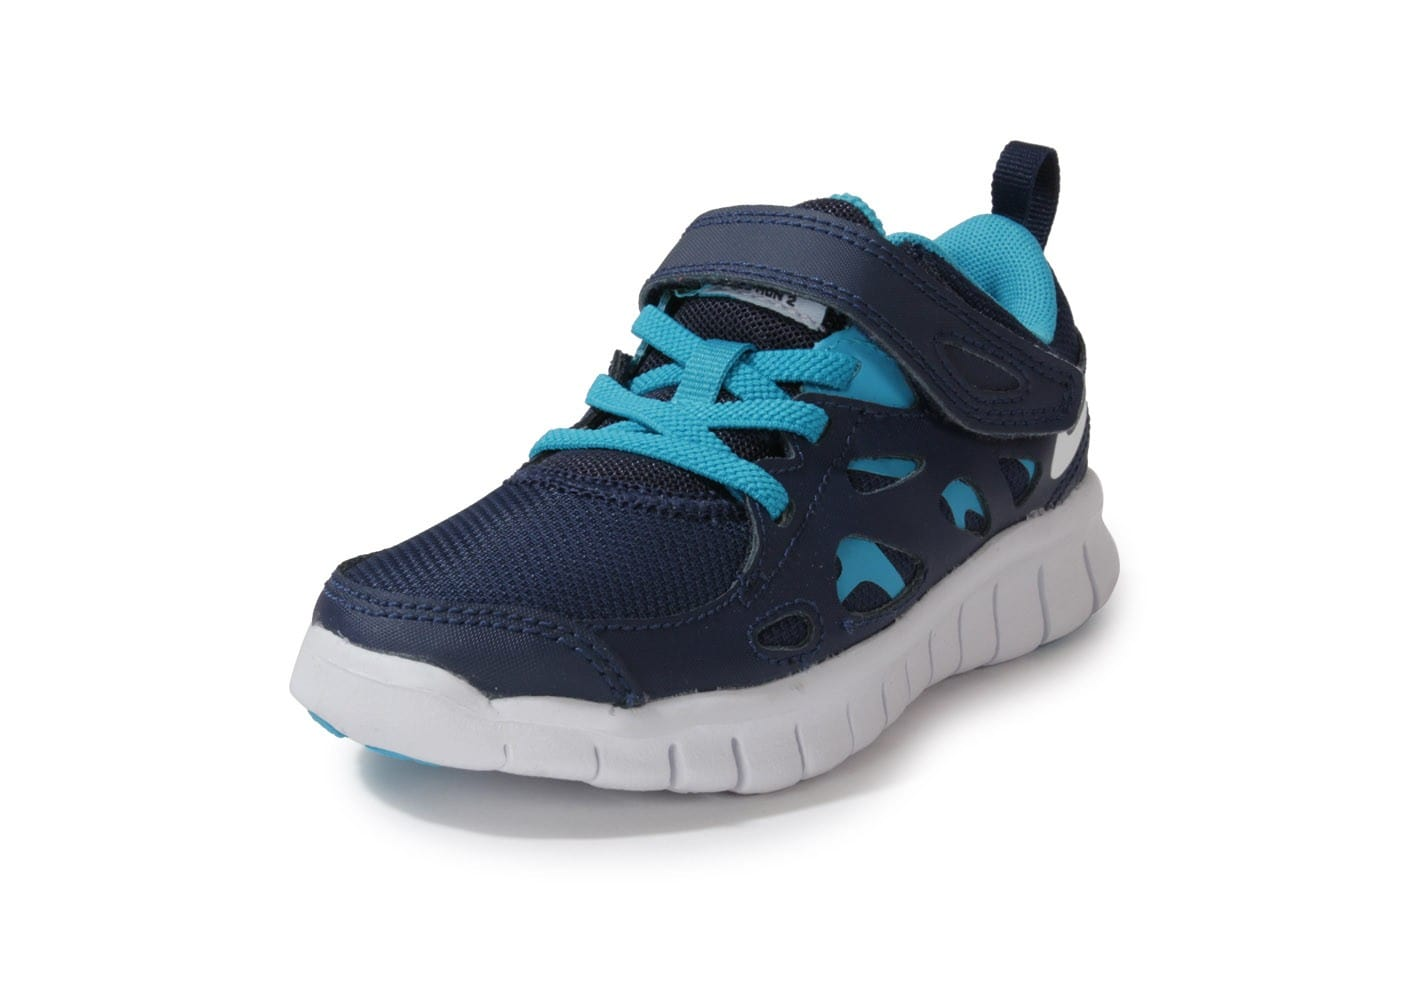 nike free run 2 bleu marine chaussures chaussures. Black Bedroom Furniture Sets. Home Design Ideas